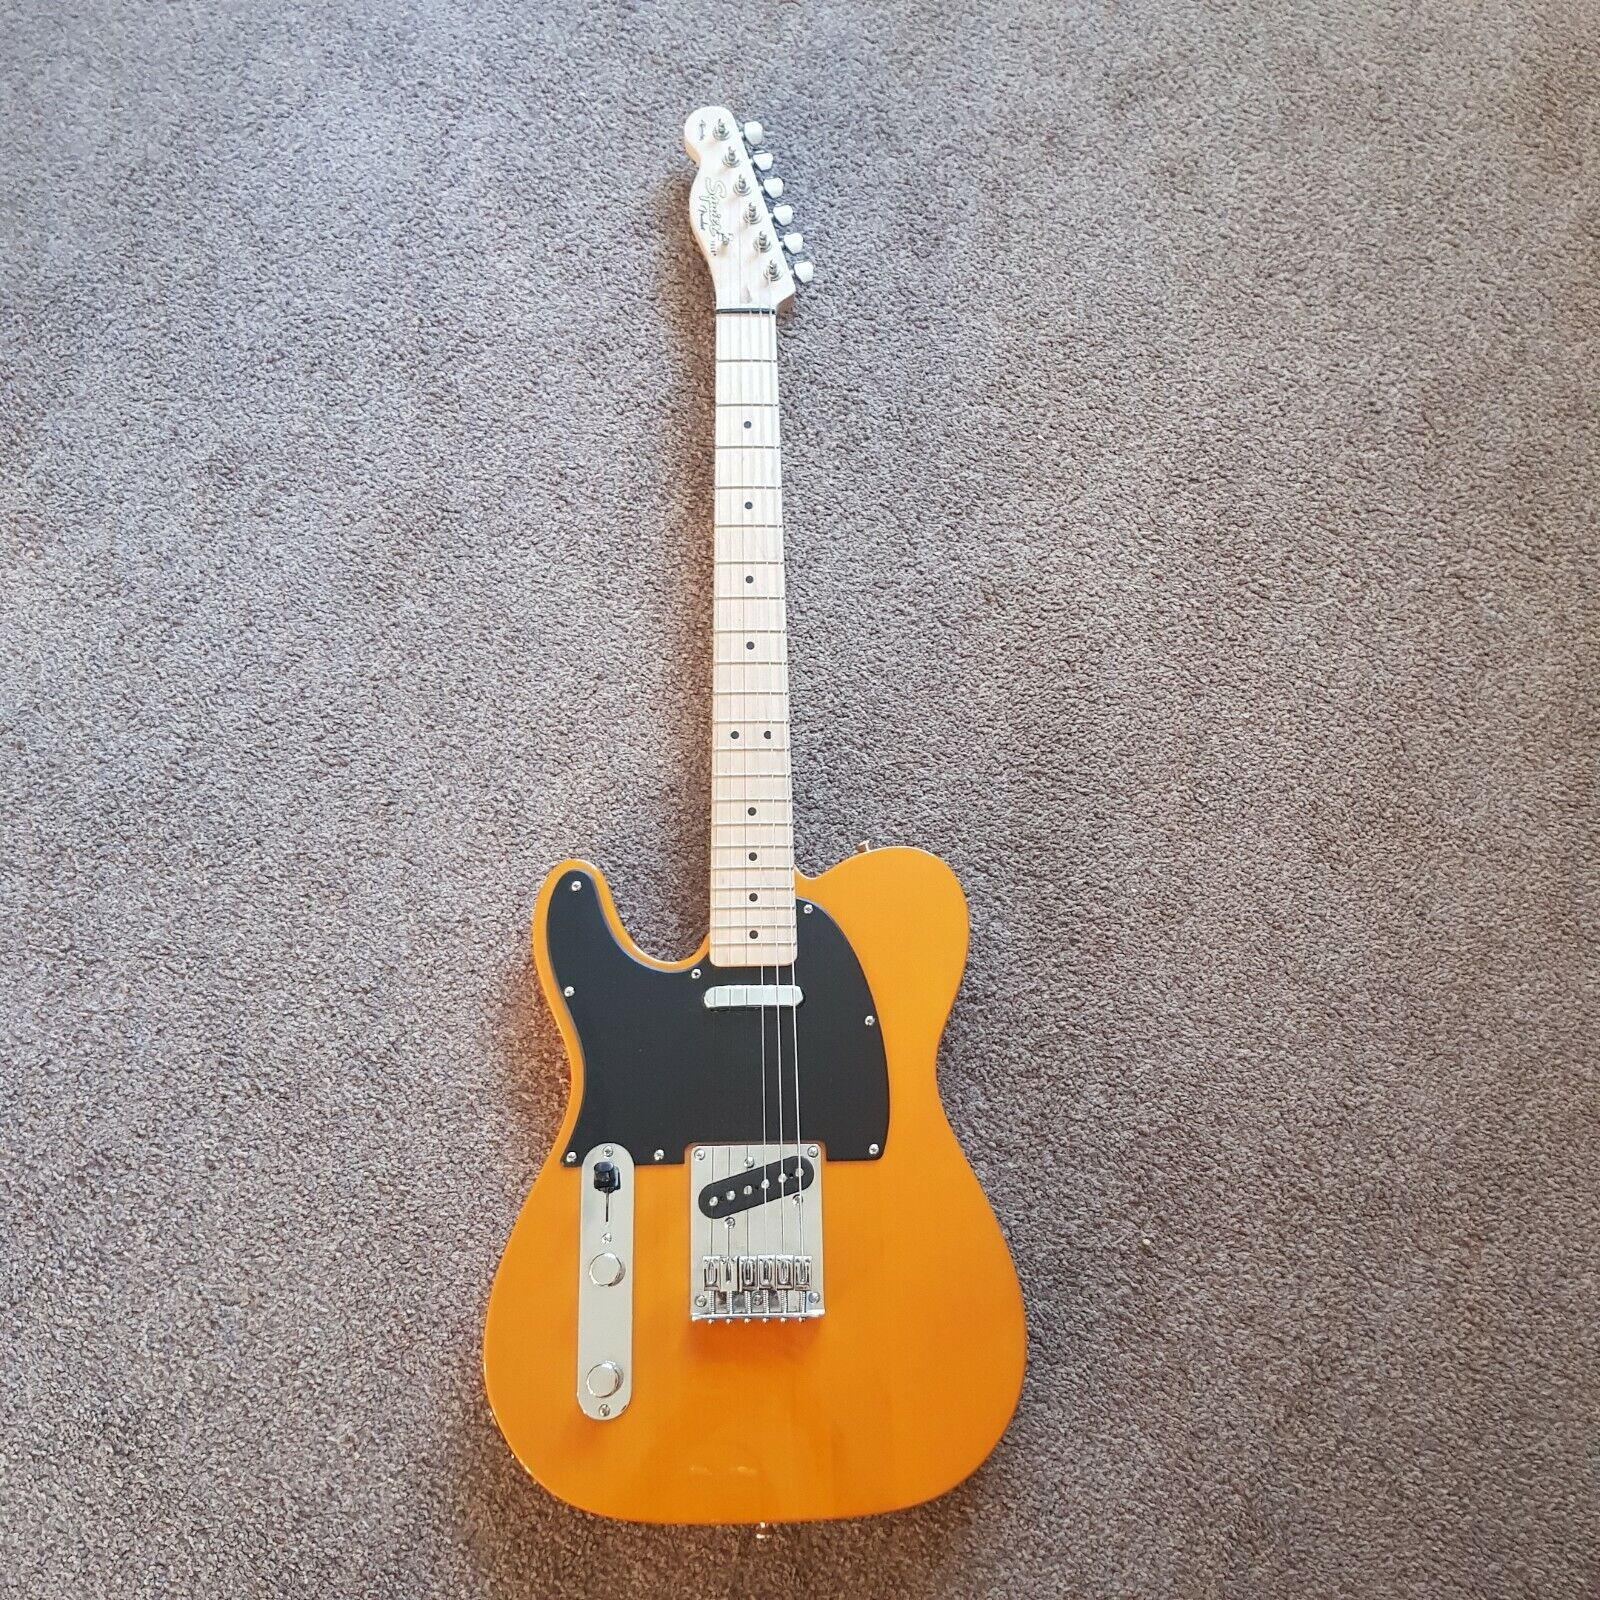 This pre-owned left handed Fender Telecaster guitar is for sale - Left-Handed Fender Squire Telecaster Electric Guitar with amp and strap +